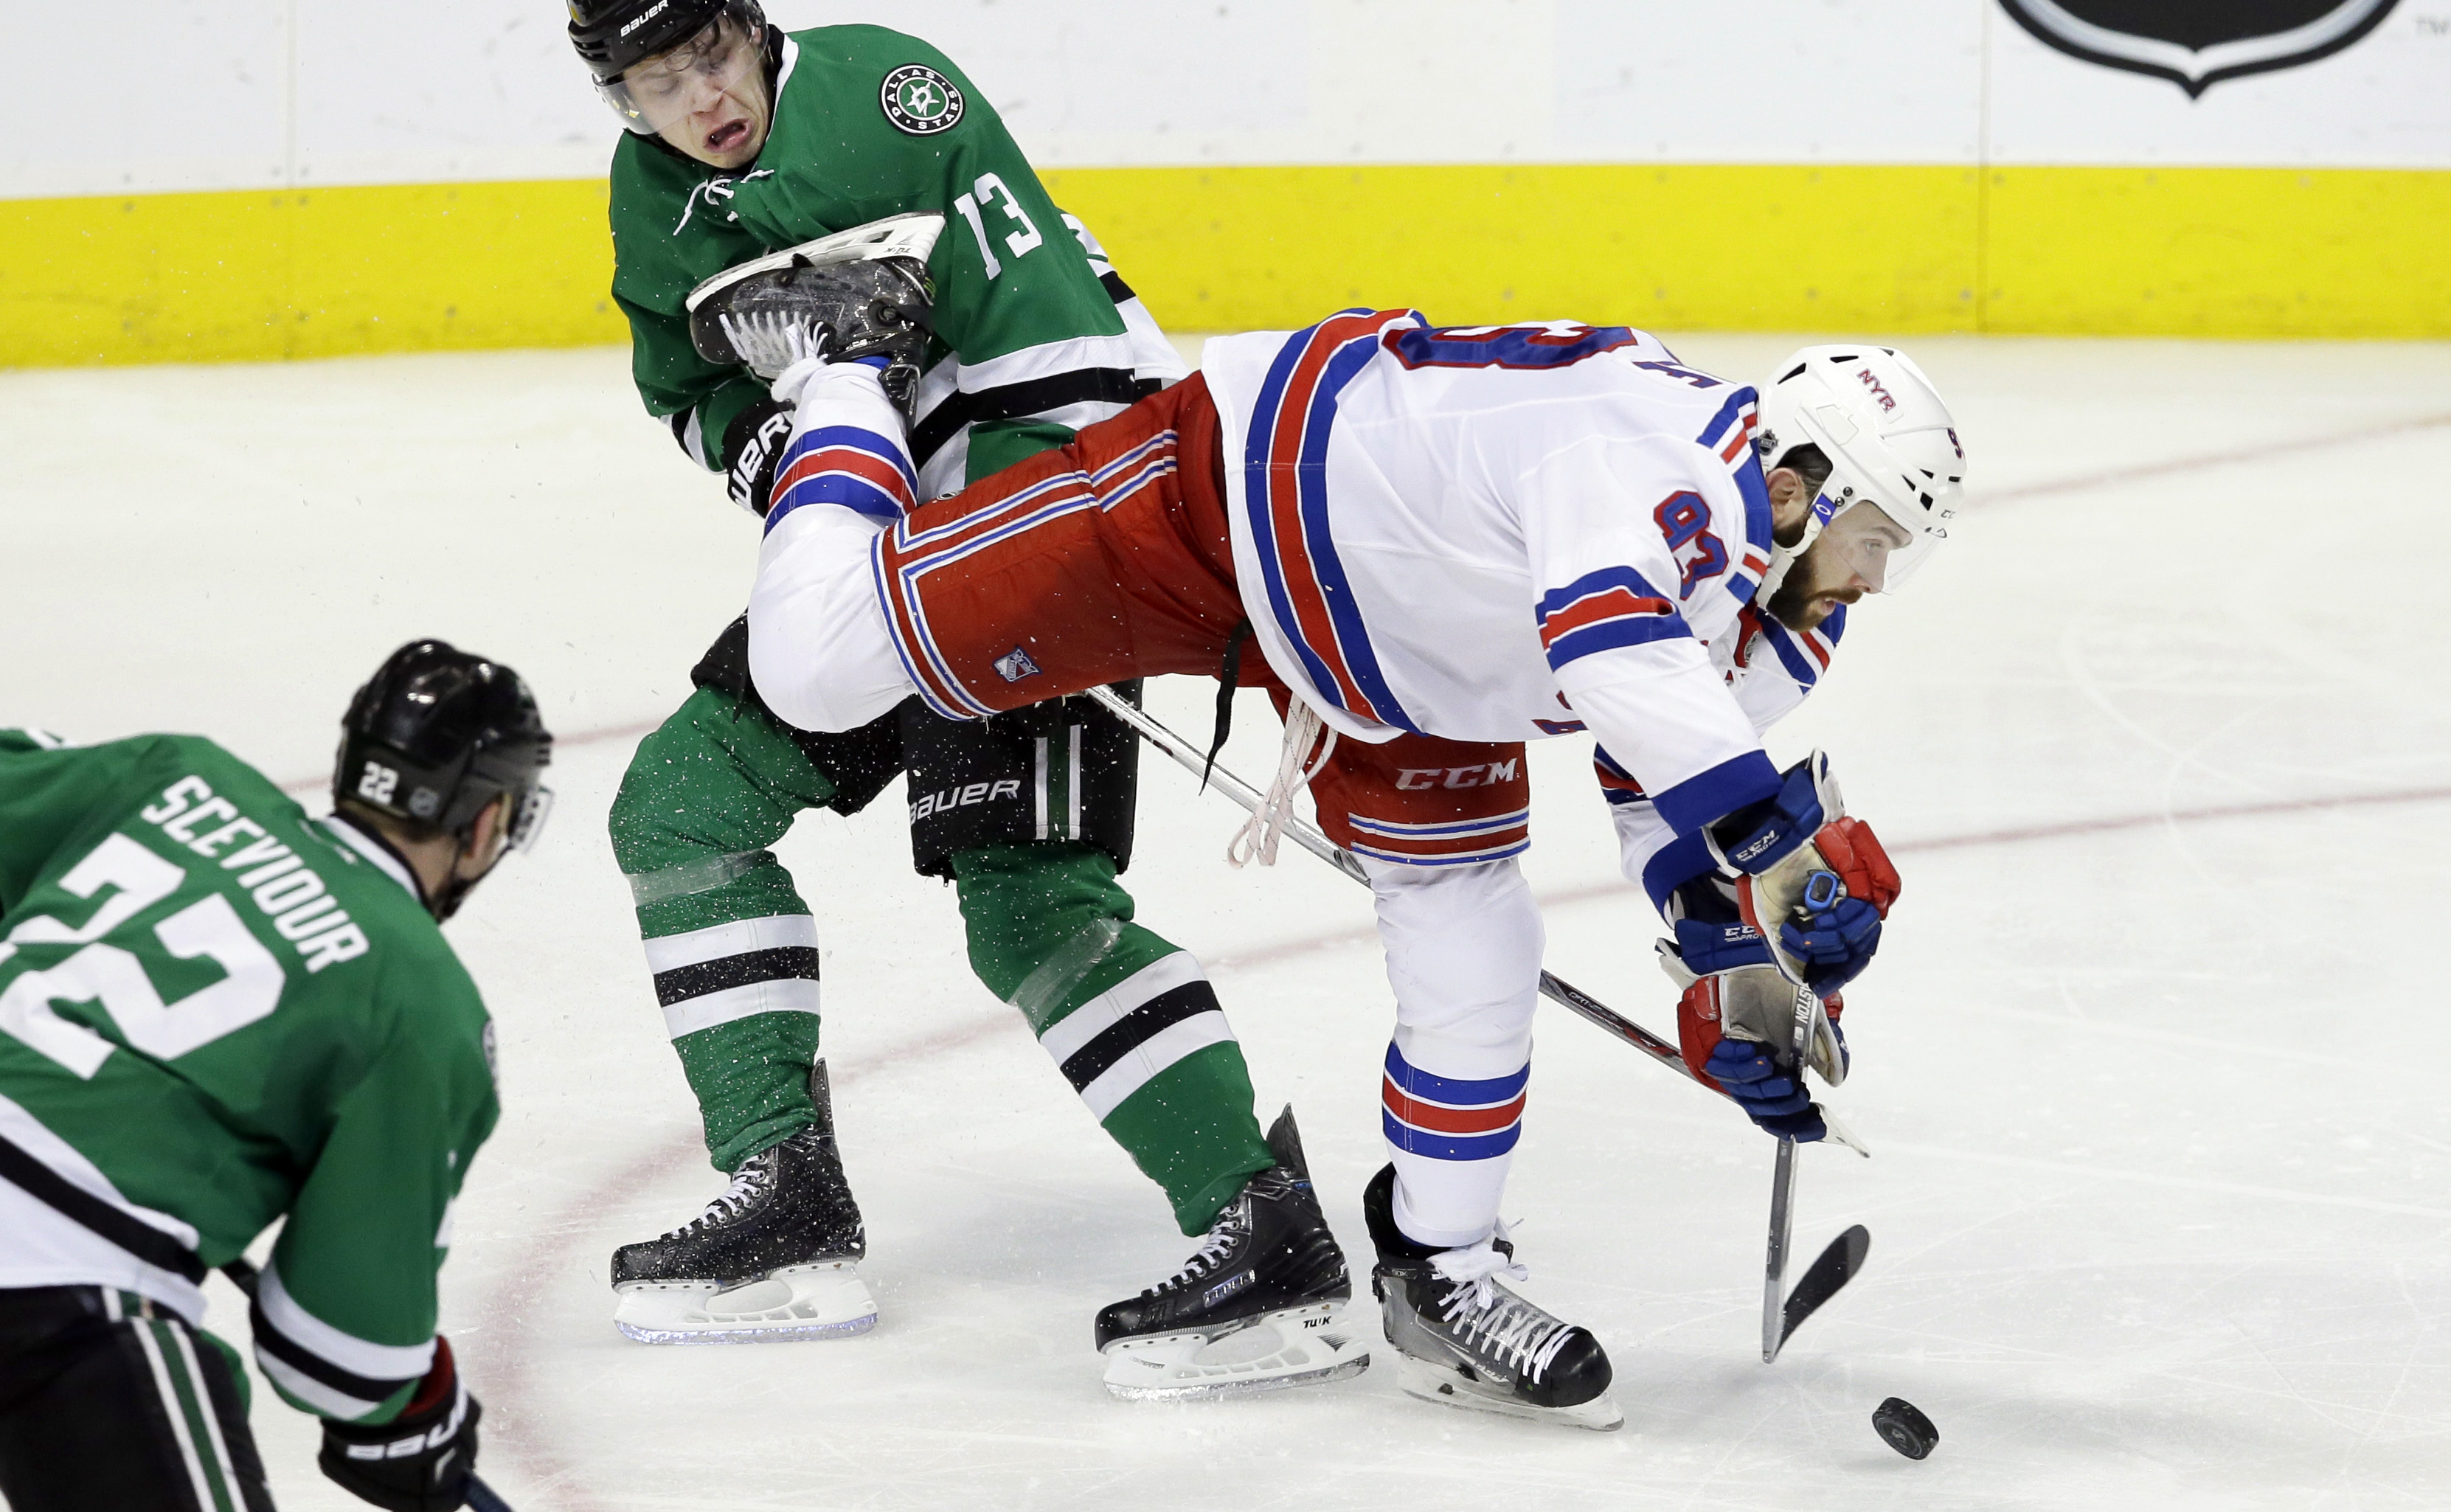 New York Rangers defenseman Keith Yandle (93) reaches for the puck against Dallas Stars center Mattias Janmark (13) as Stars' Colton Sceviour (22) looks on during the third period of an NHL hockey game Saturday, Feb. 27, 2016, in Dallas. The Rangers won 3